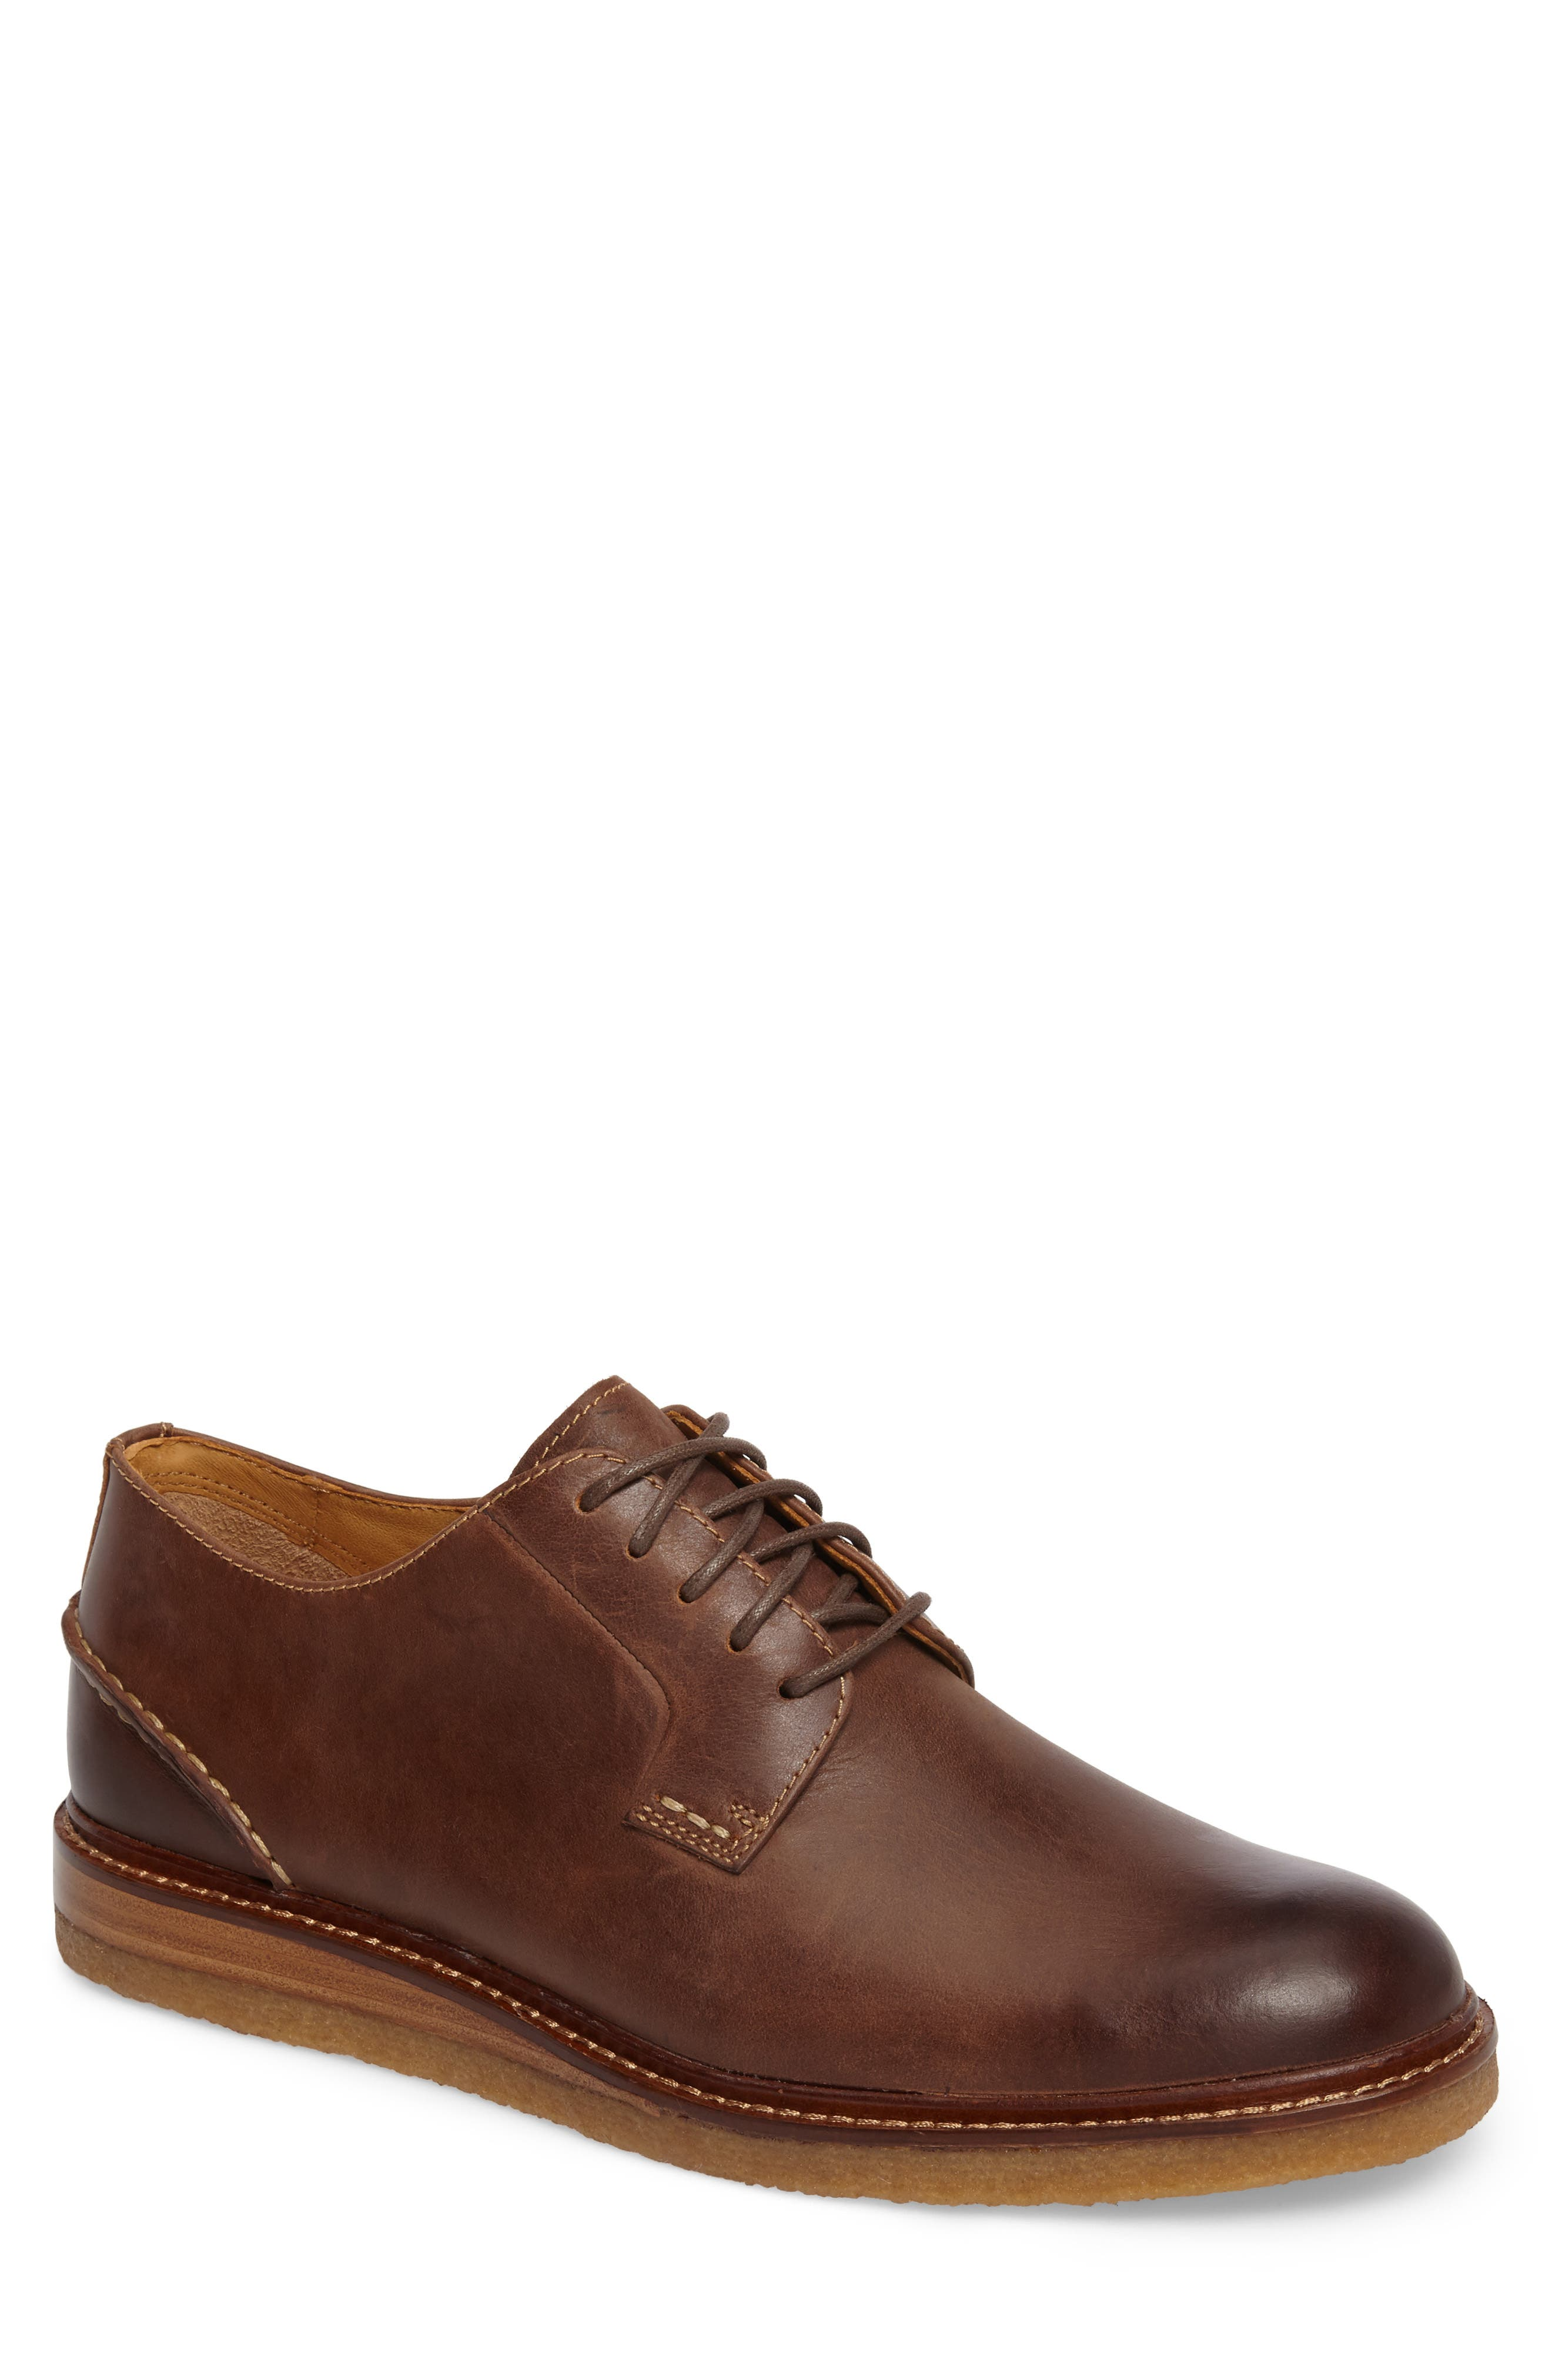 Gold Cup Plain Toe Derby,                             Main thumbnail 1, color,                             Brown Leather